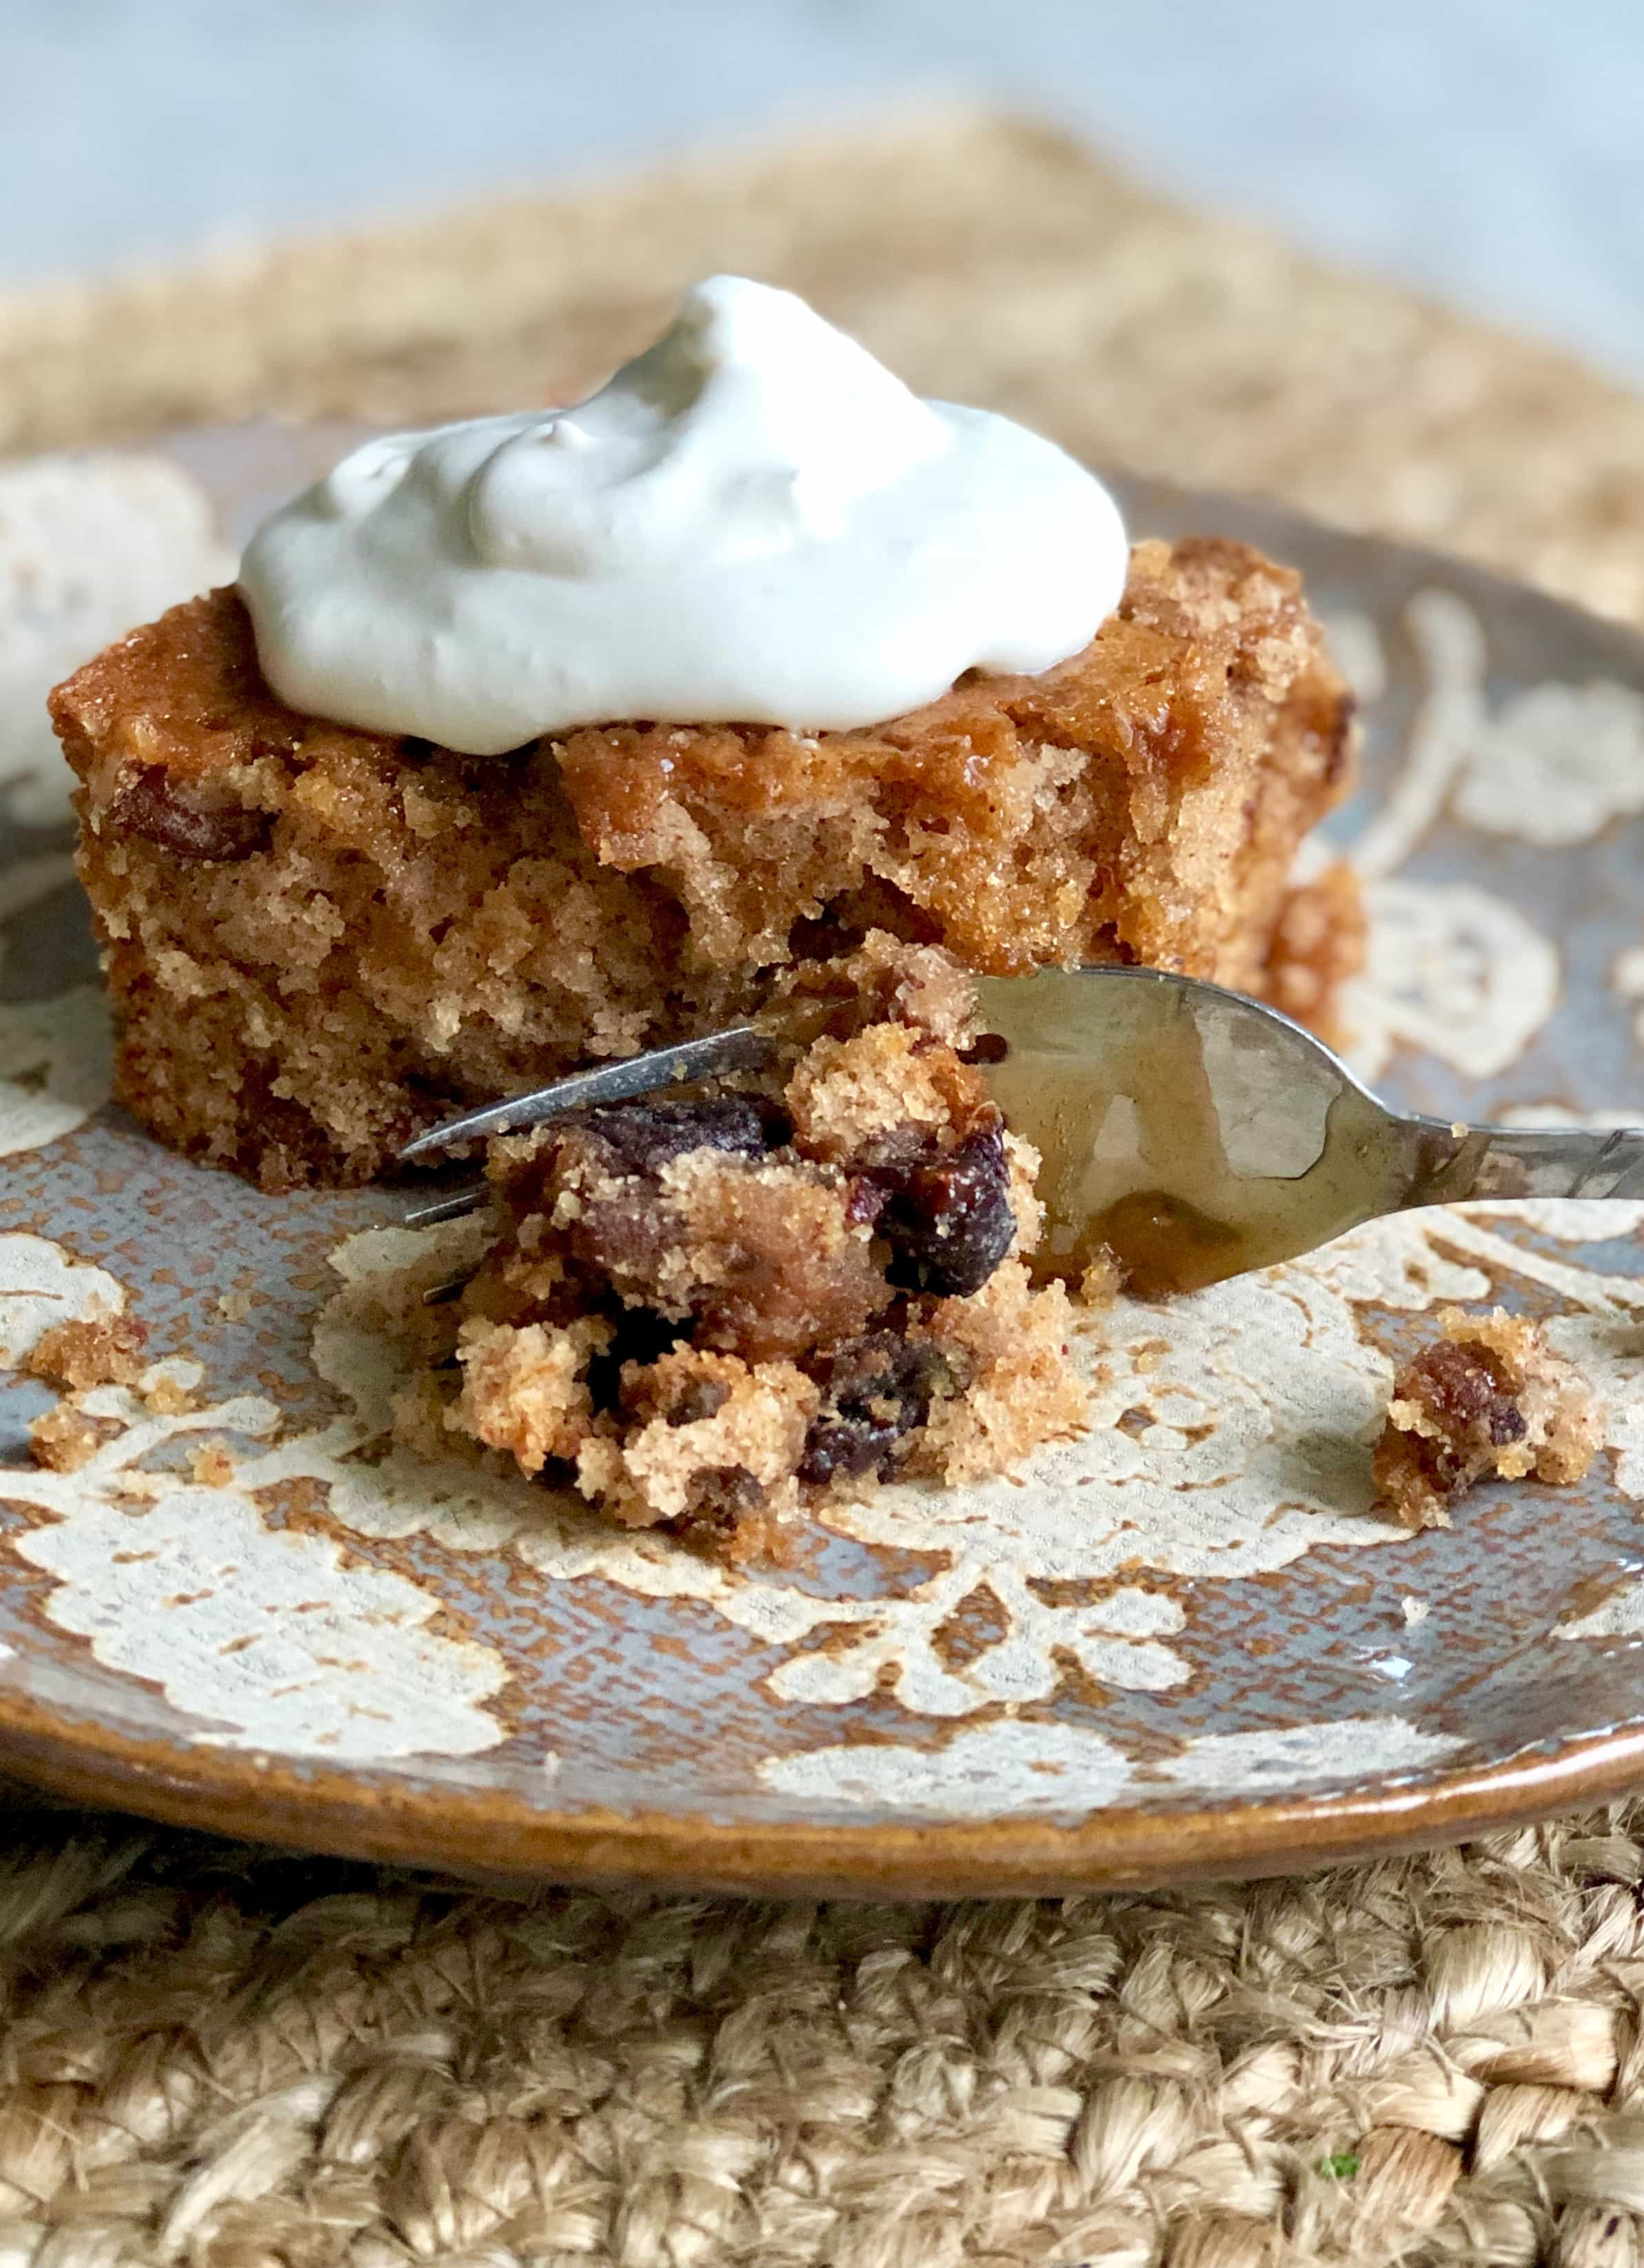 a slice of prune cake with whipped cream on top